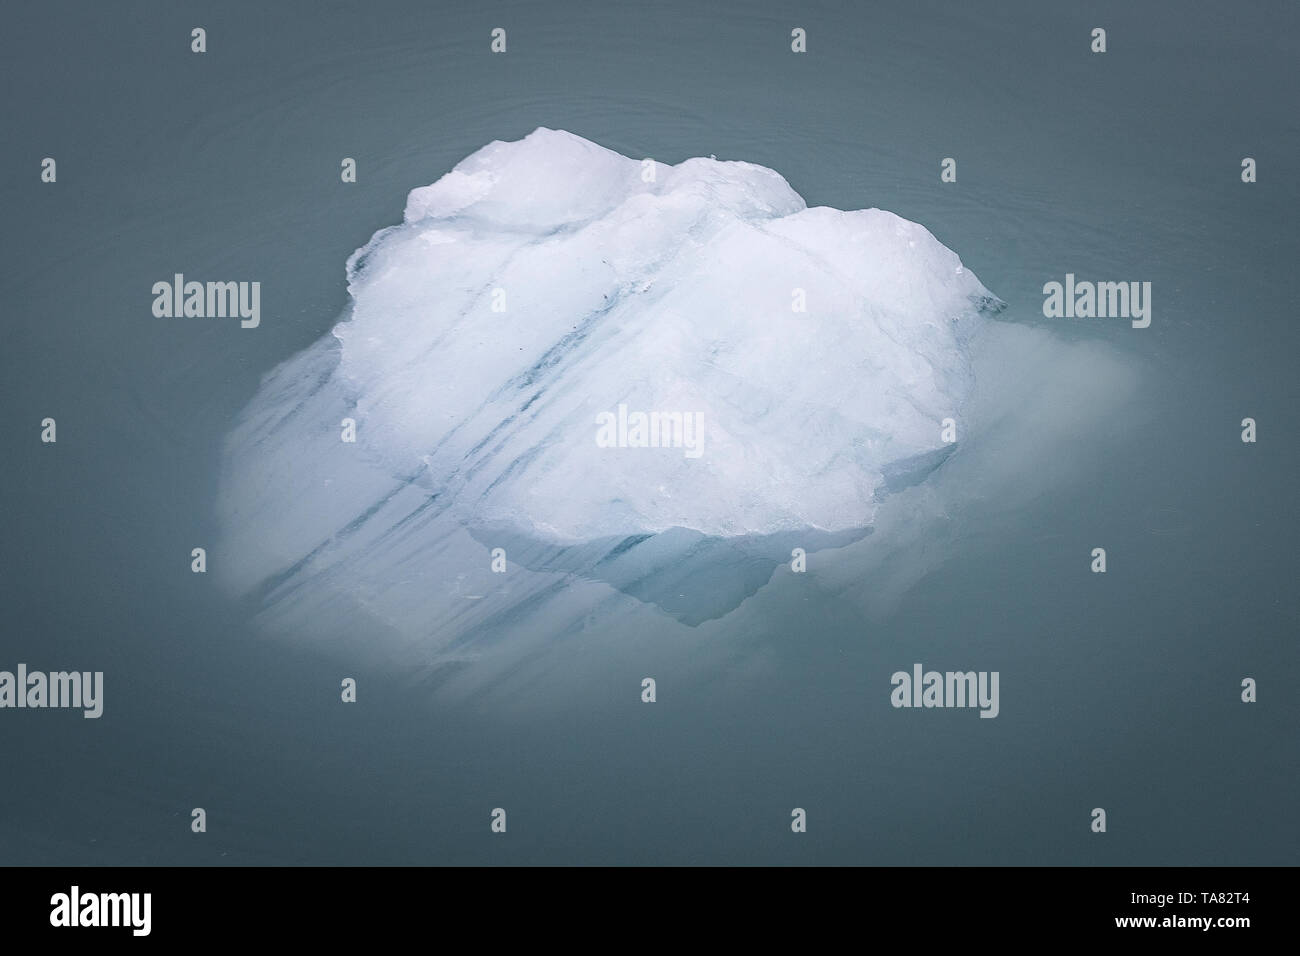 Pieces of glacier ice Nordenskiöldbreen near Pyramiden, on the coast of Billefjord, Svalbard. Norway - Stock Image